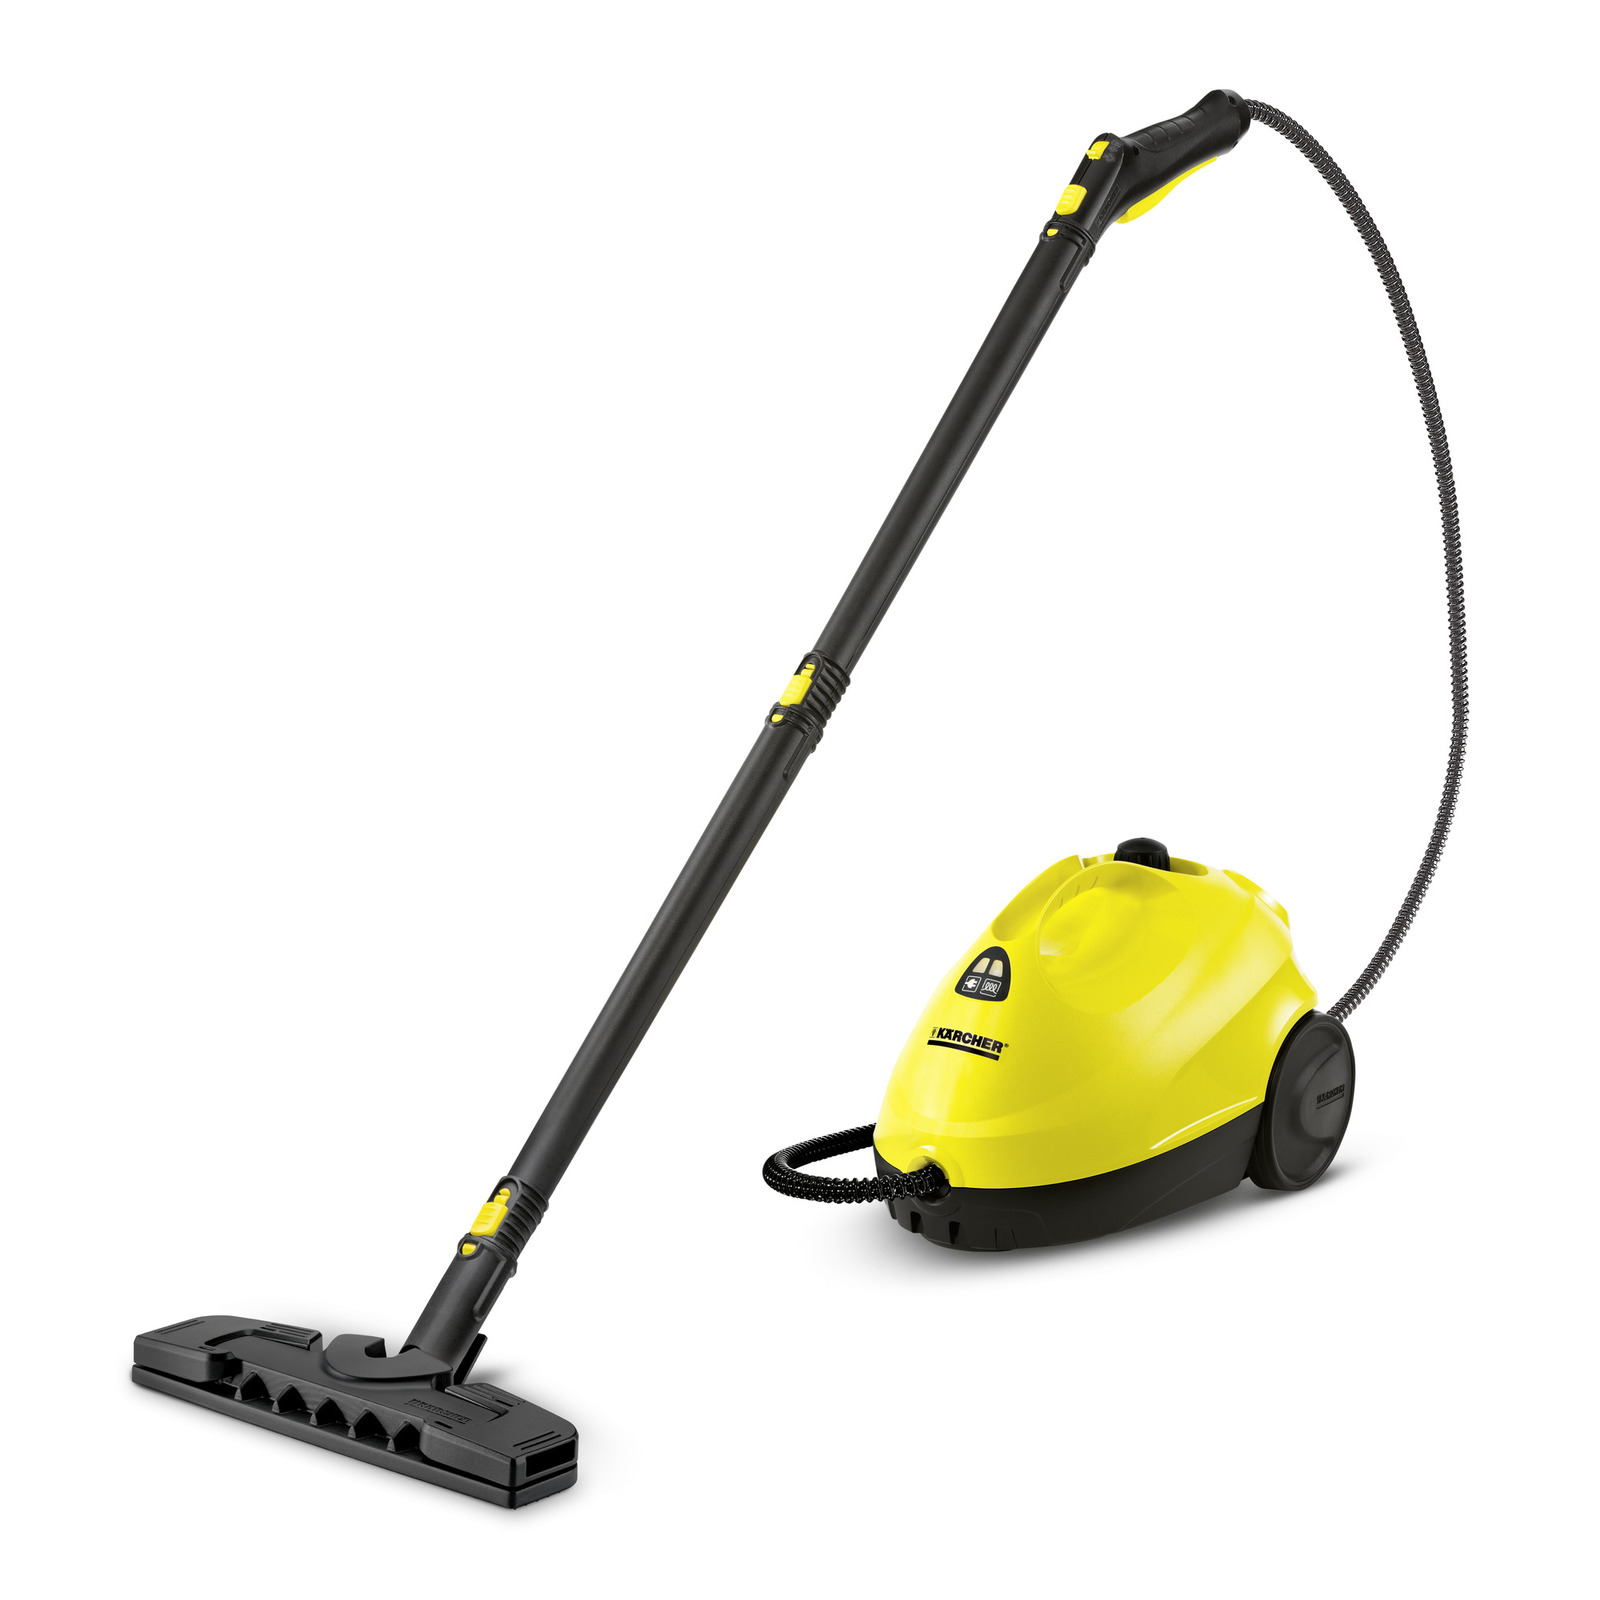 steam cleaner sc 2 home karcher australia. Black Bedroom Furniture Sets. Home Design Ideas